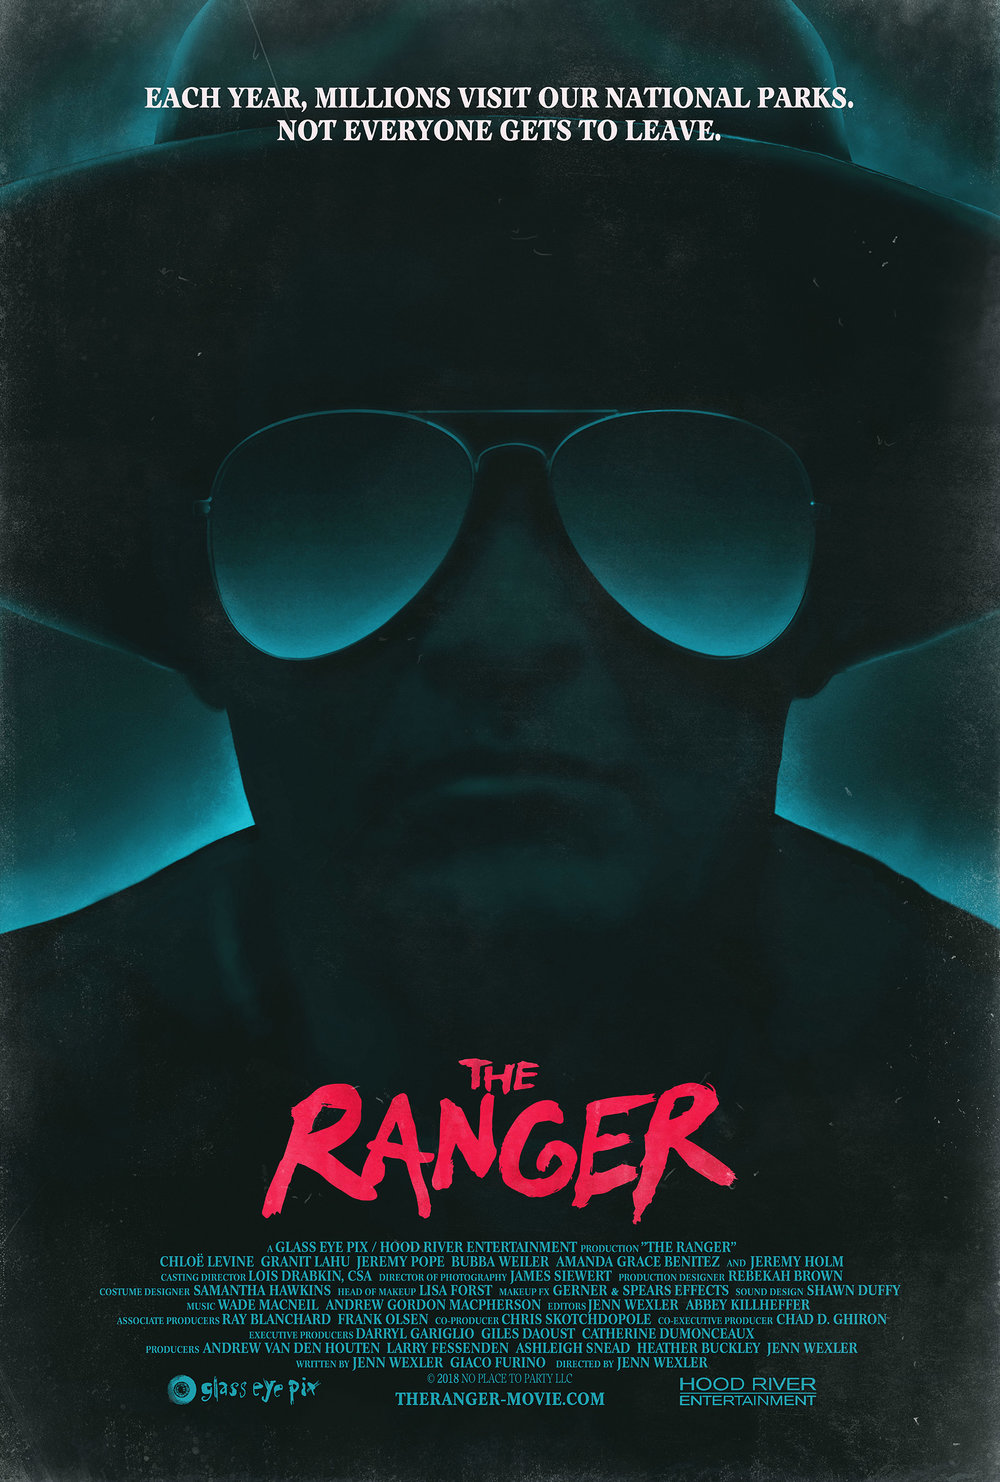 THE-RANGER-poster-final.jpg